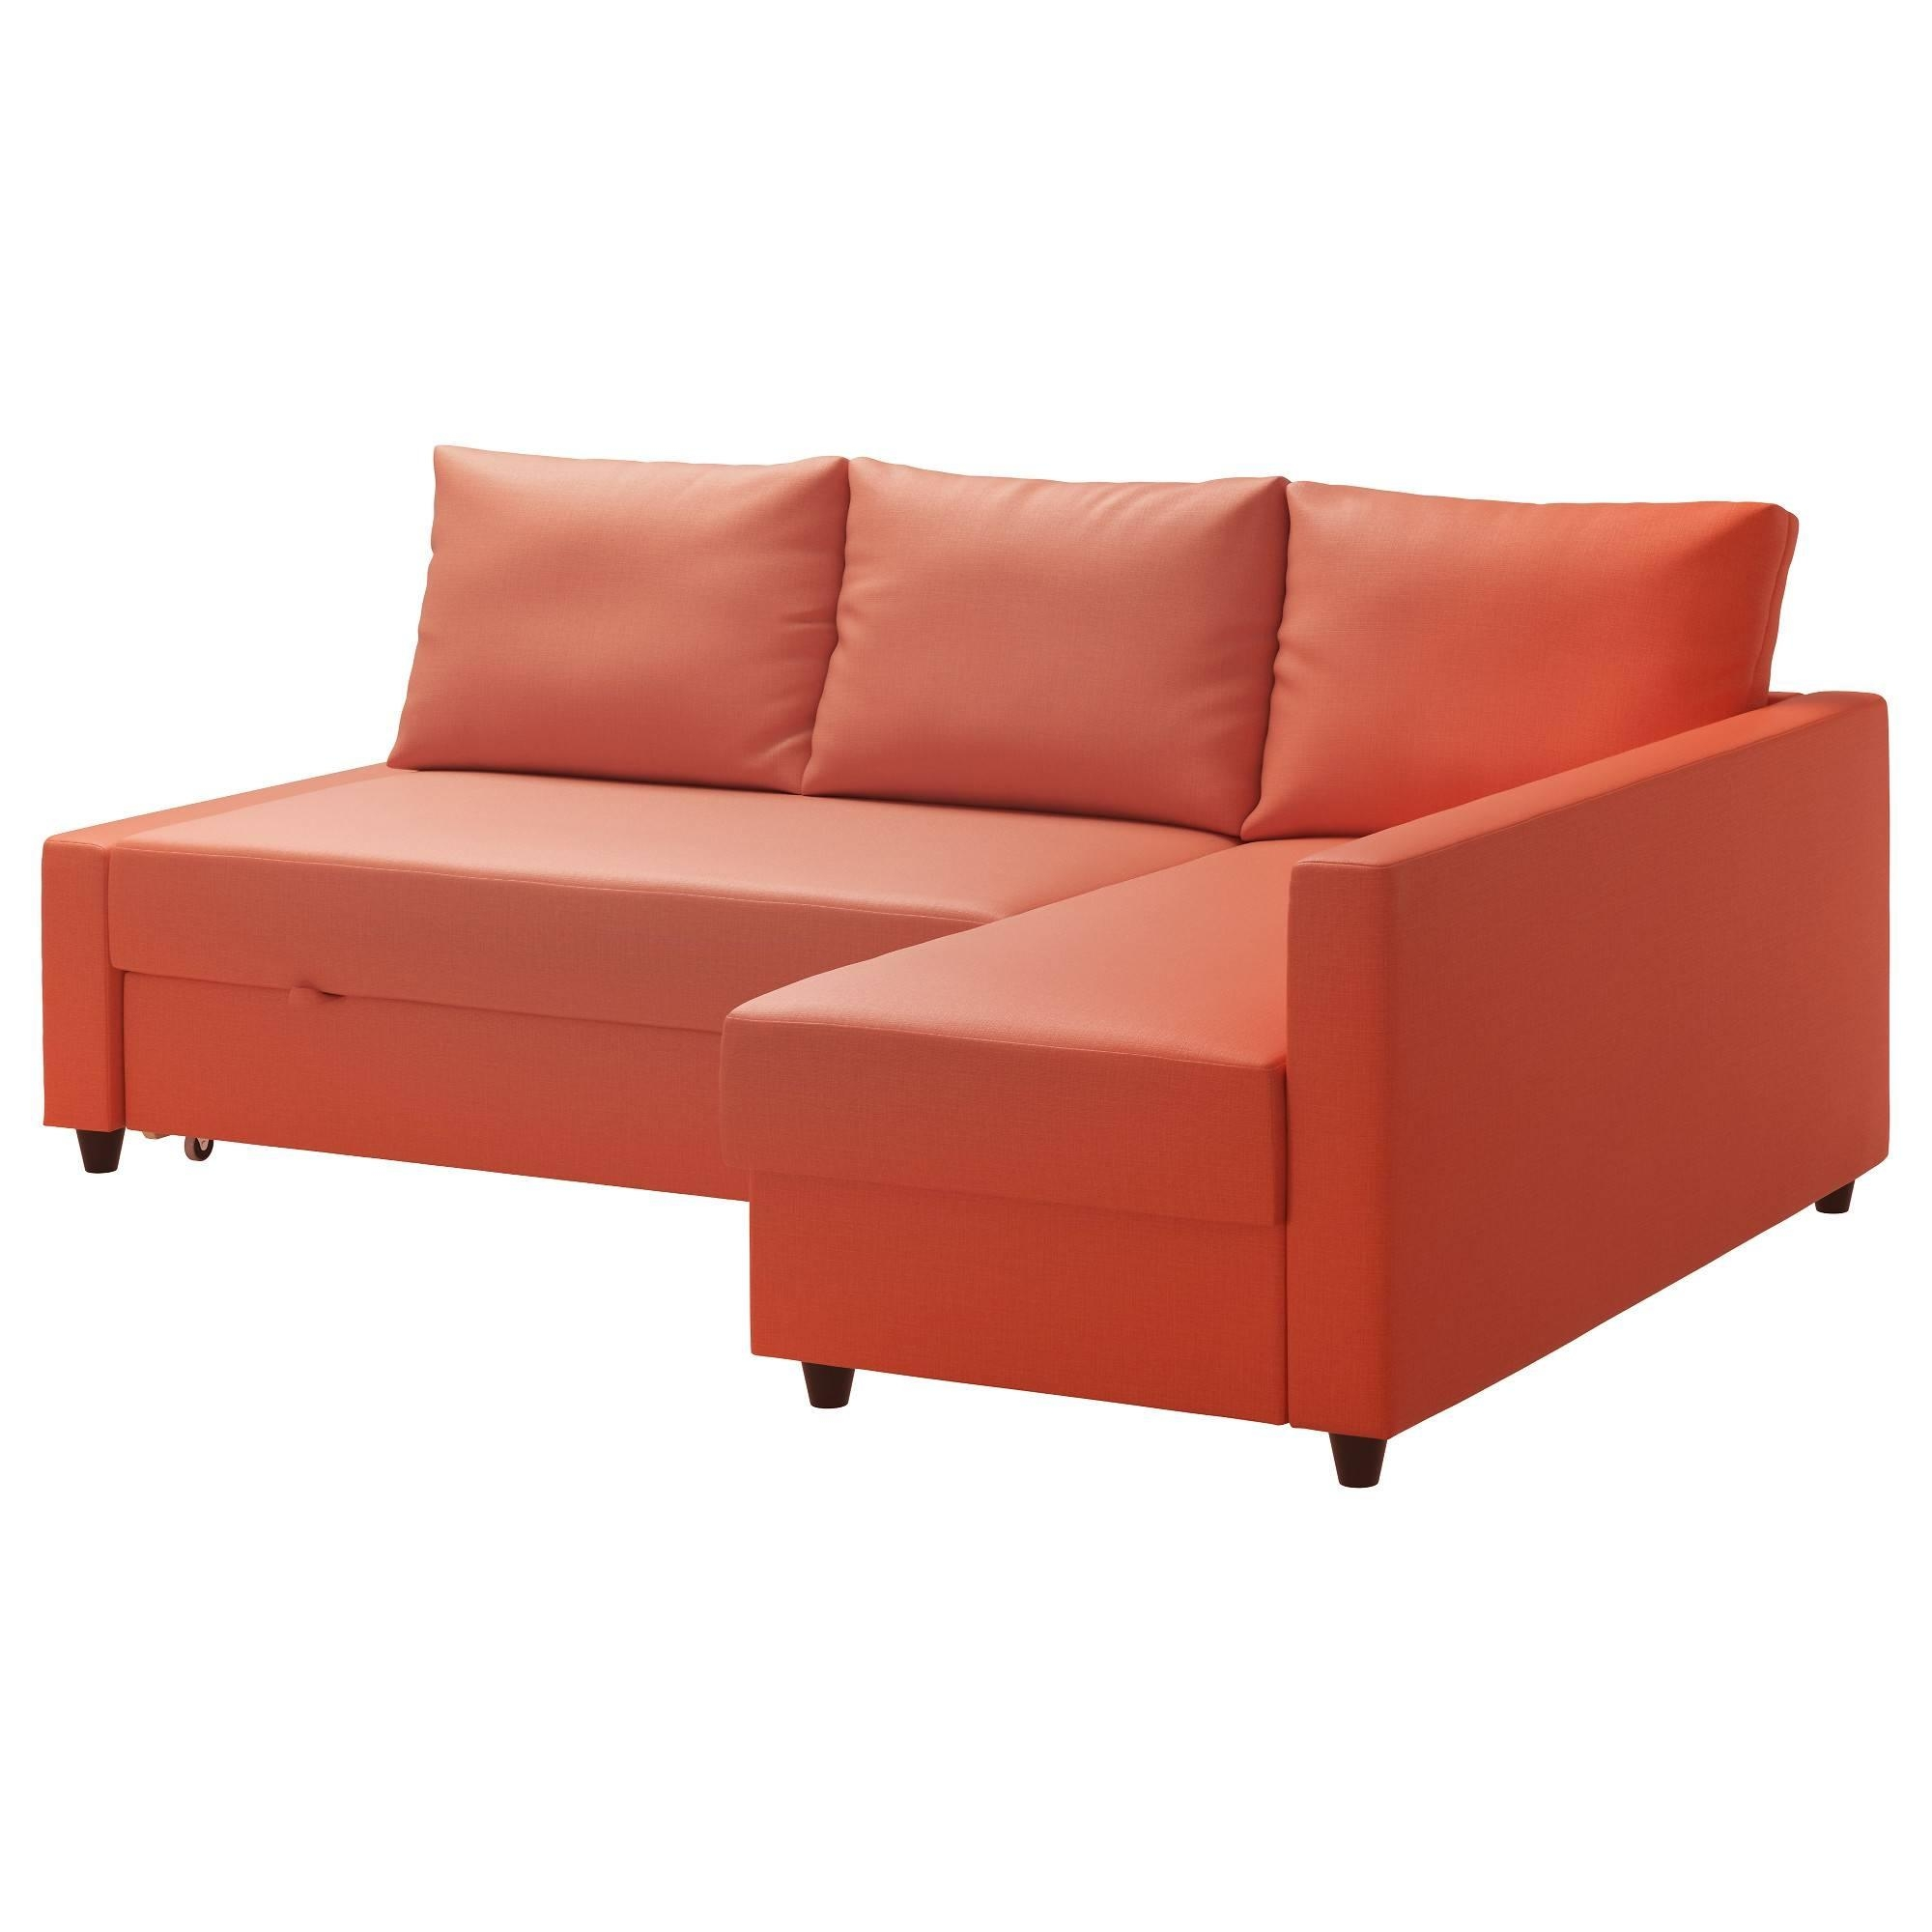 sofa beds cheap ikea small duck egg blue corner 20 43 choices of red ideas